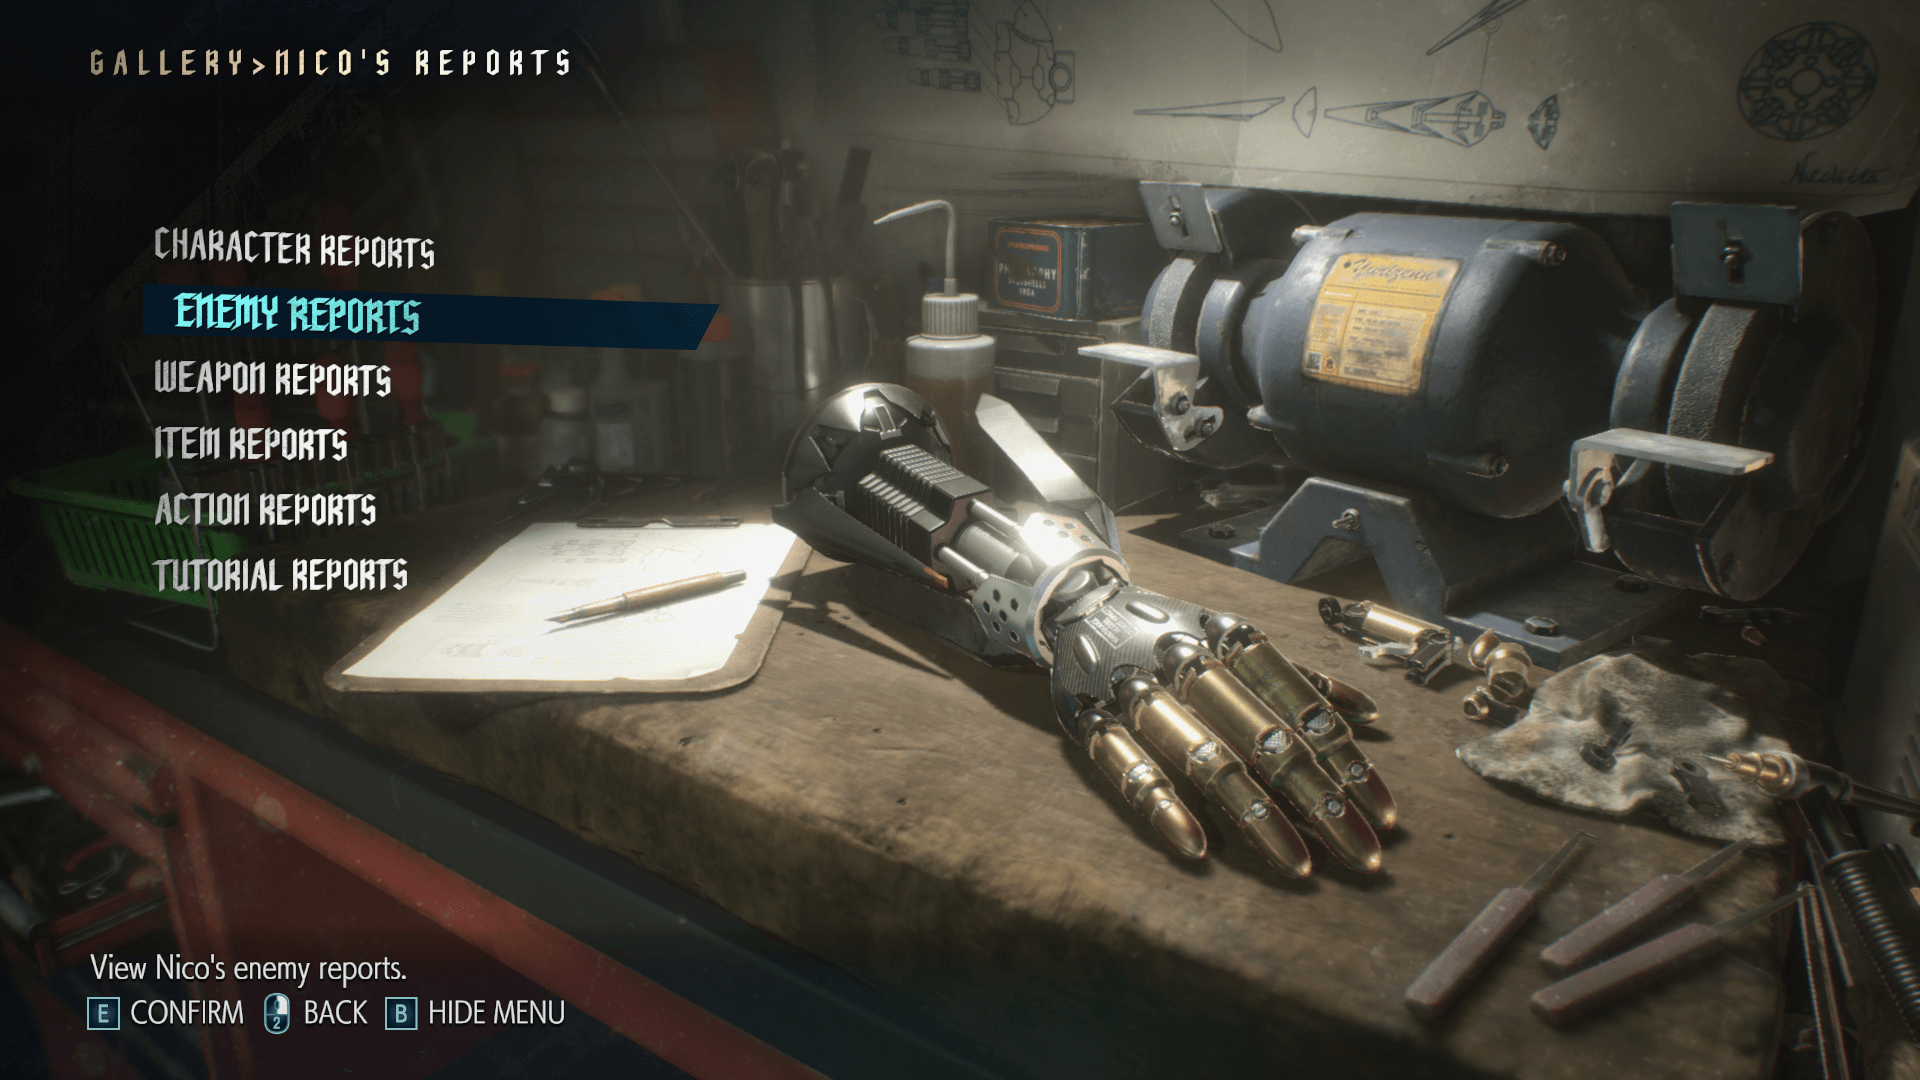 Gallery screenshot of Devil May Cry 5 video game interface.